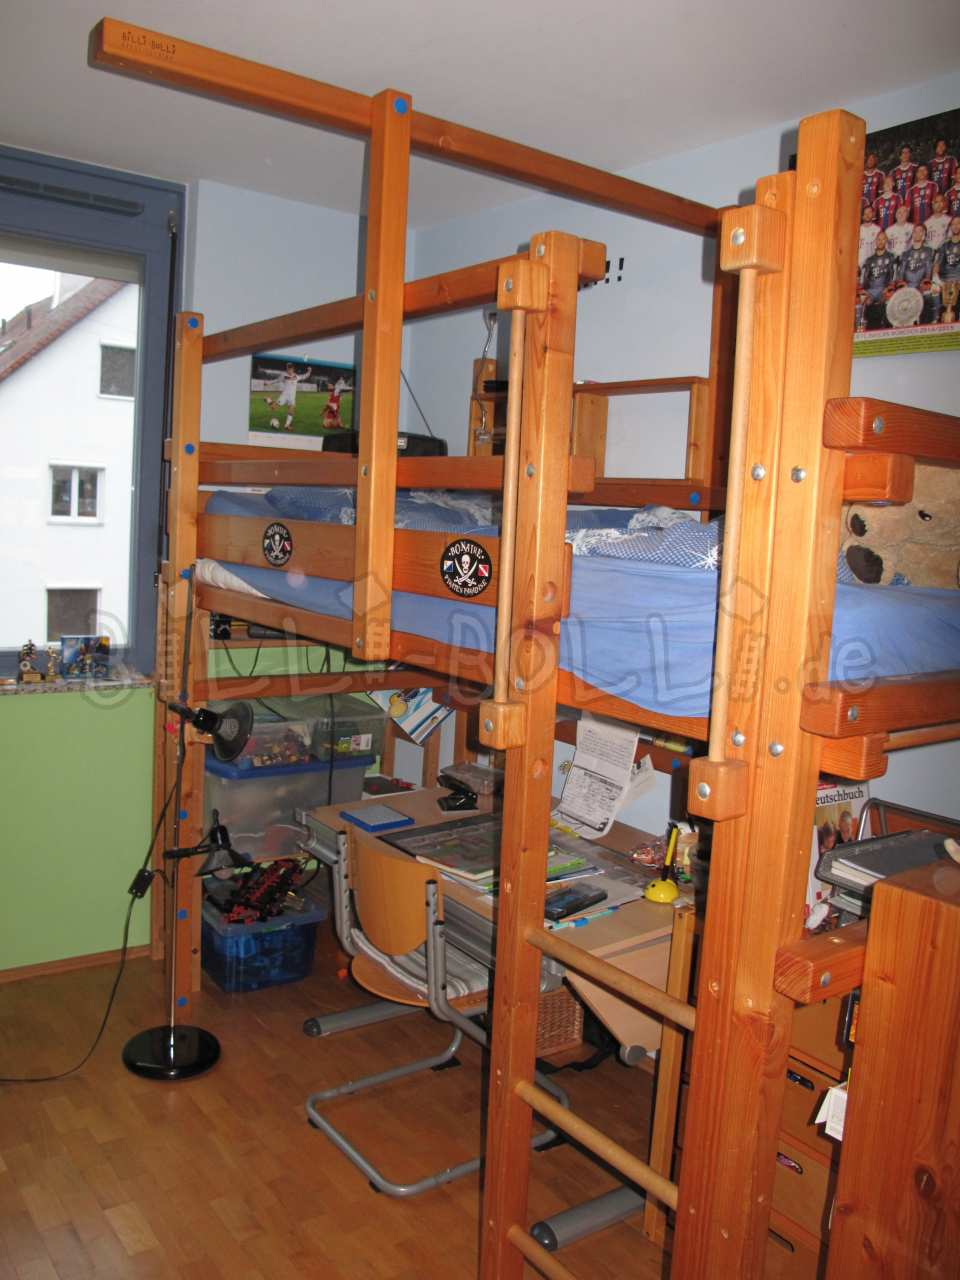 Collating high bed, 90 x 200 cm, pine oil-waxed (second hand loft bed)